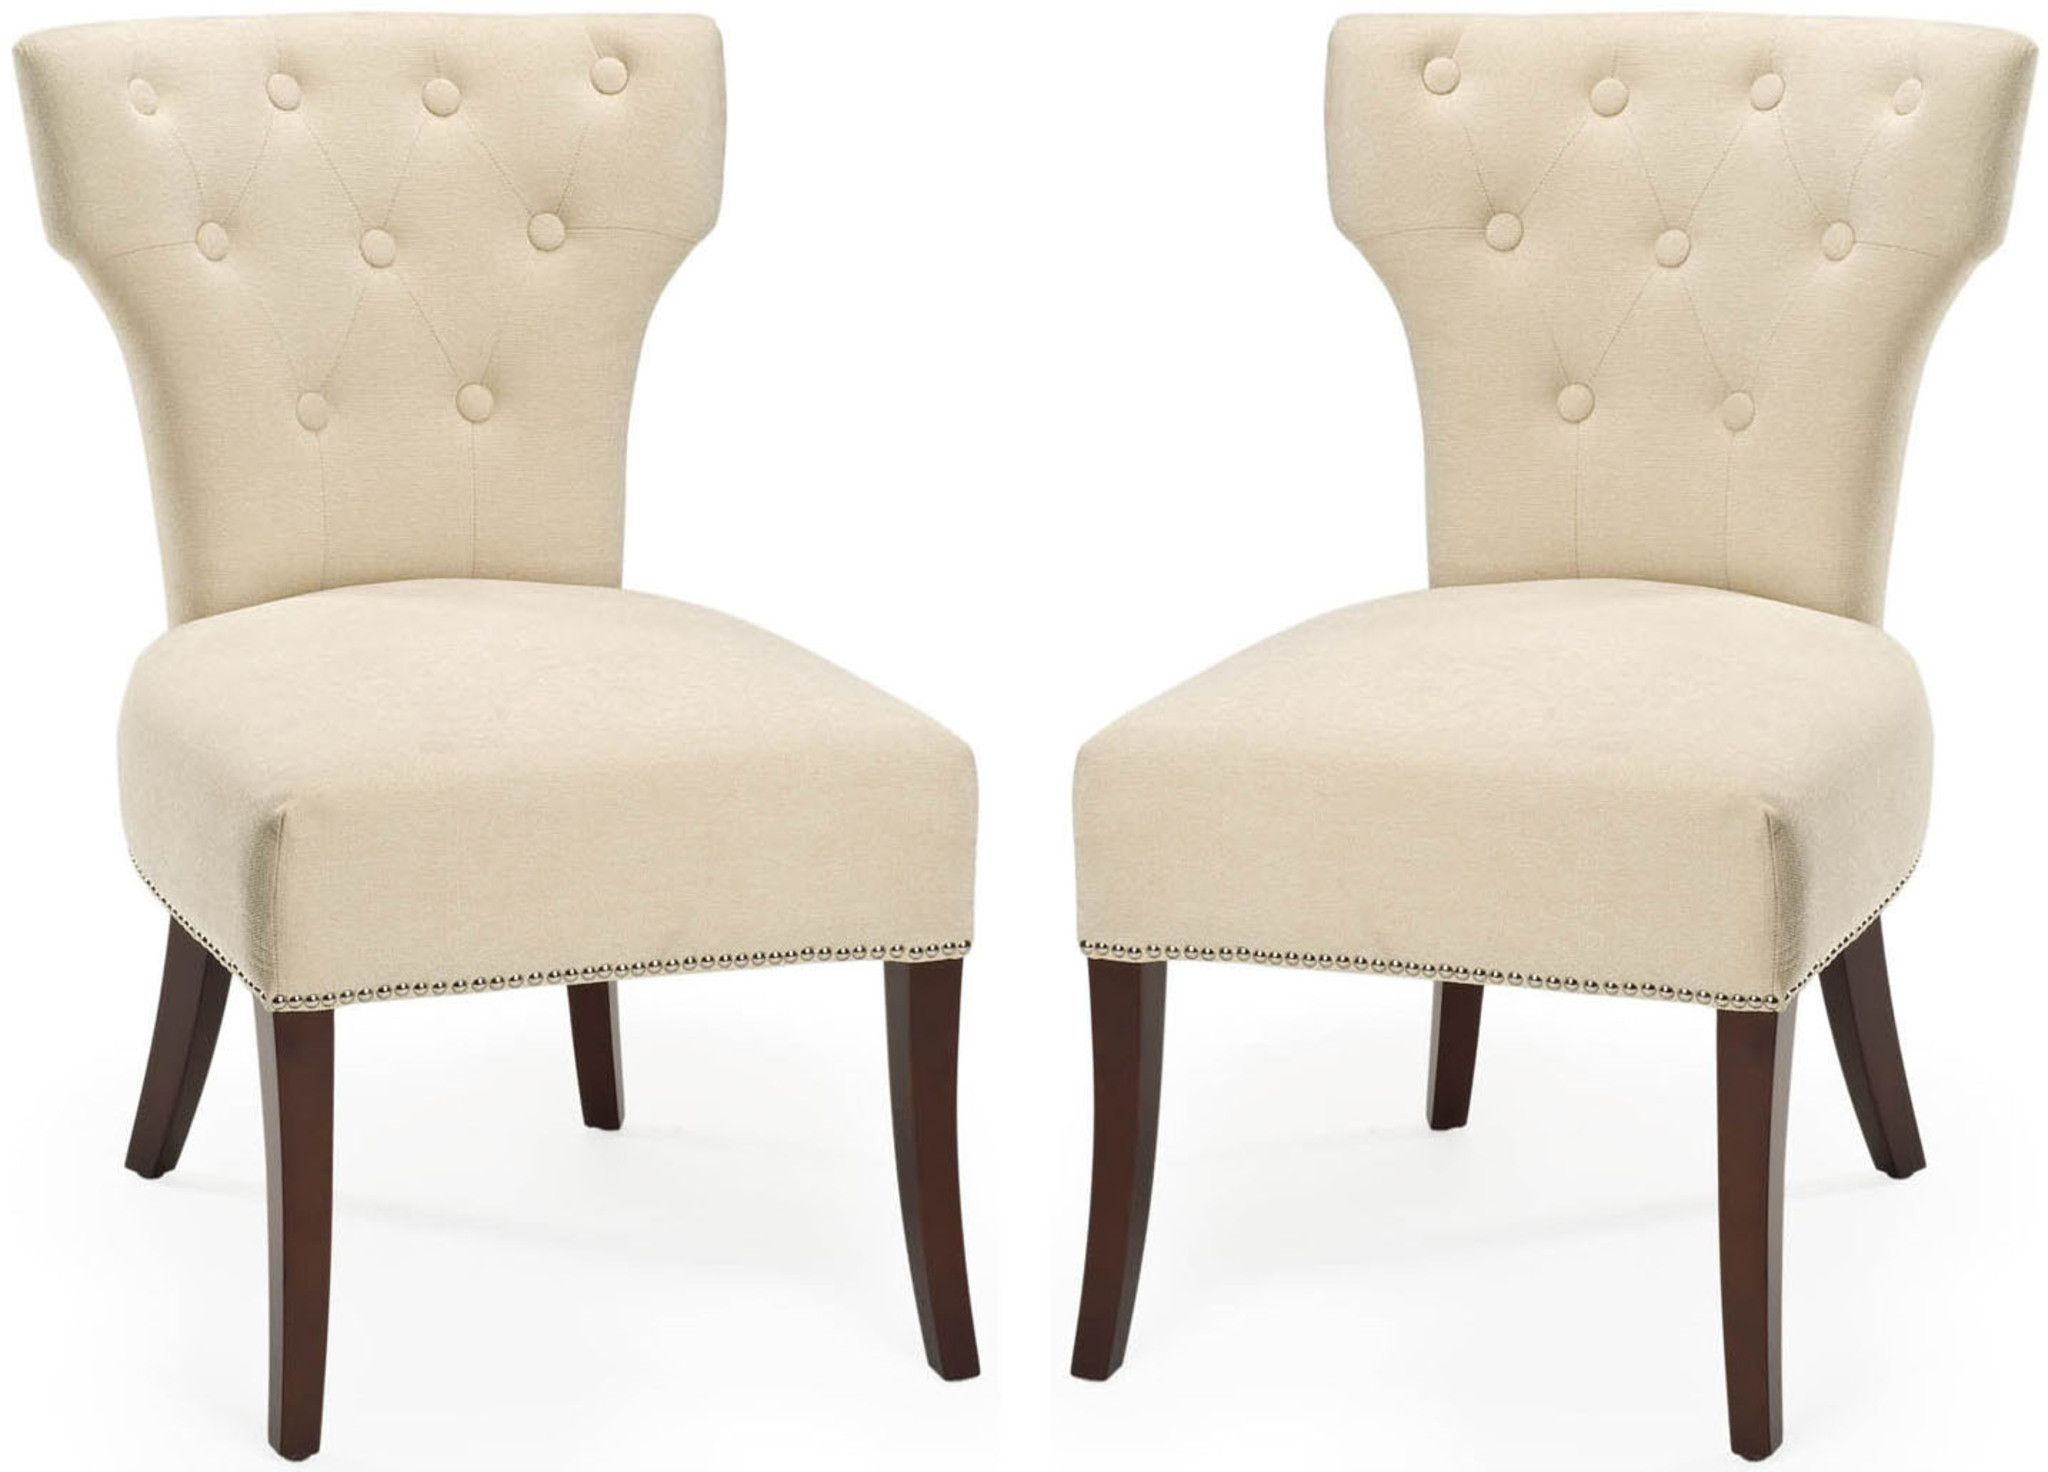 Fox1003b Accent Chairs Dining Chairs Furniture By Trending